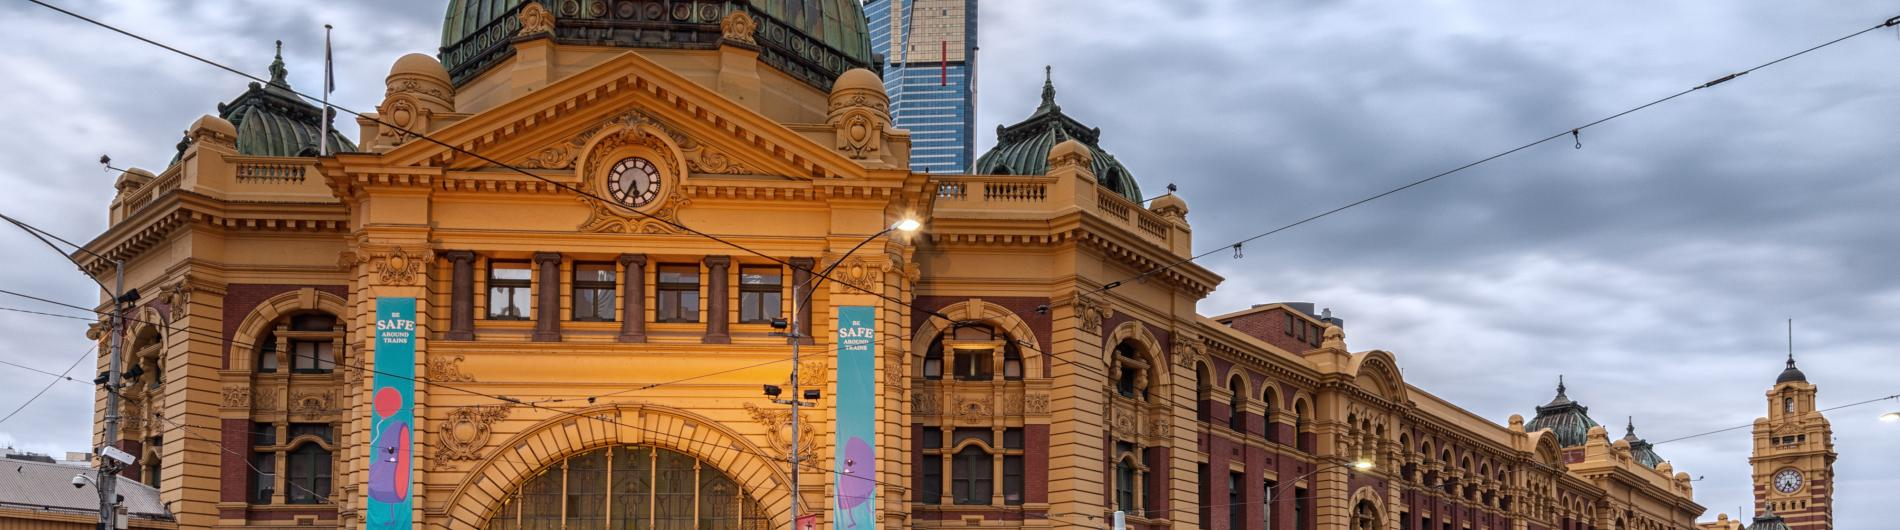 Flinders Street Station (ISO100 Photography)